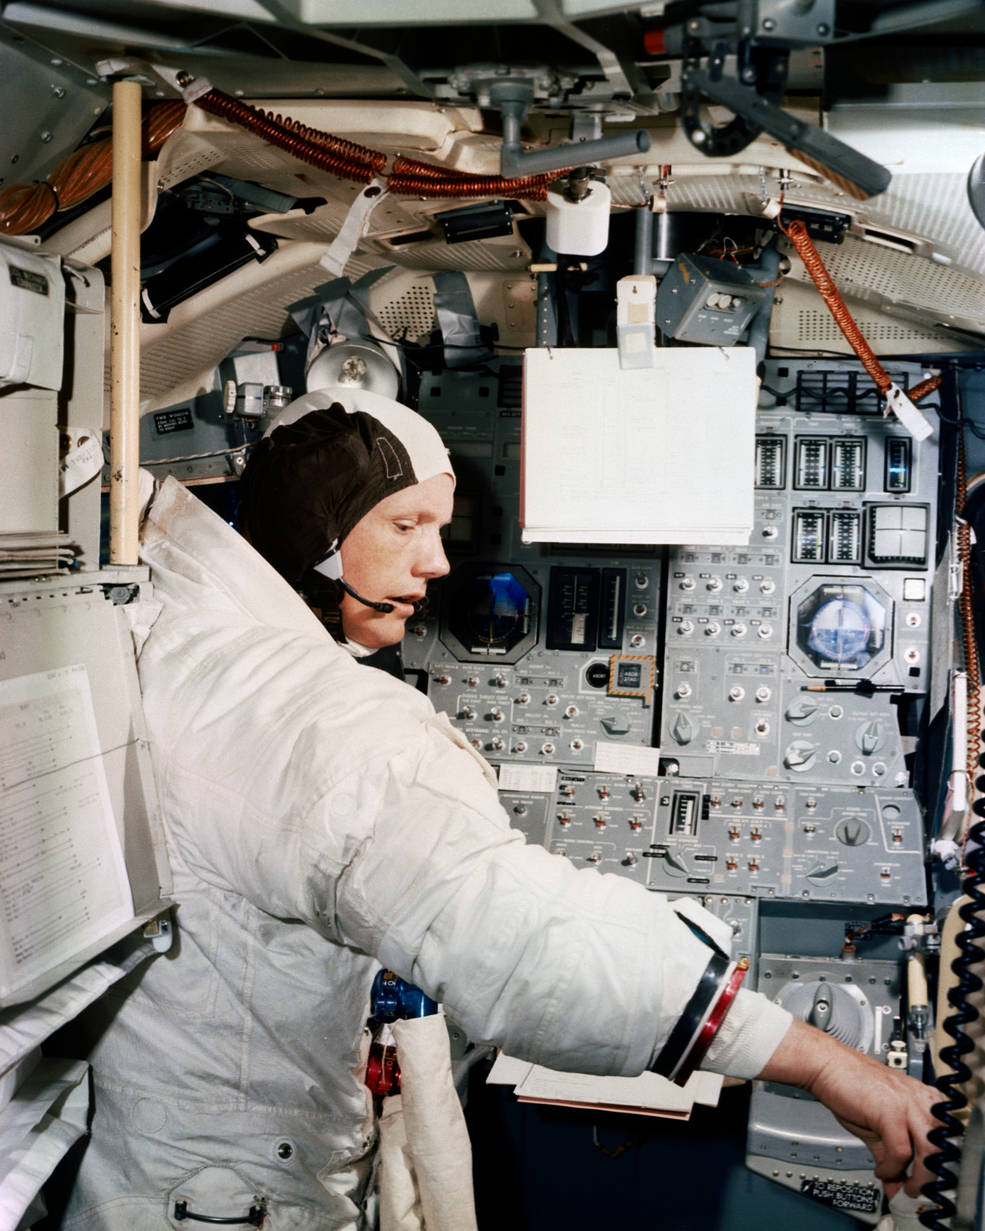 apollo_11_armstrong_in_lm_sim_ksc